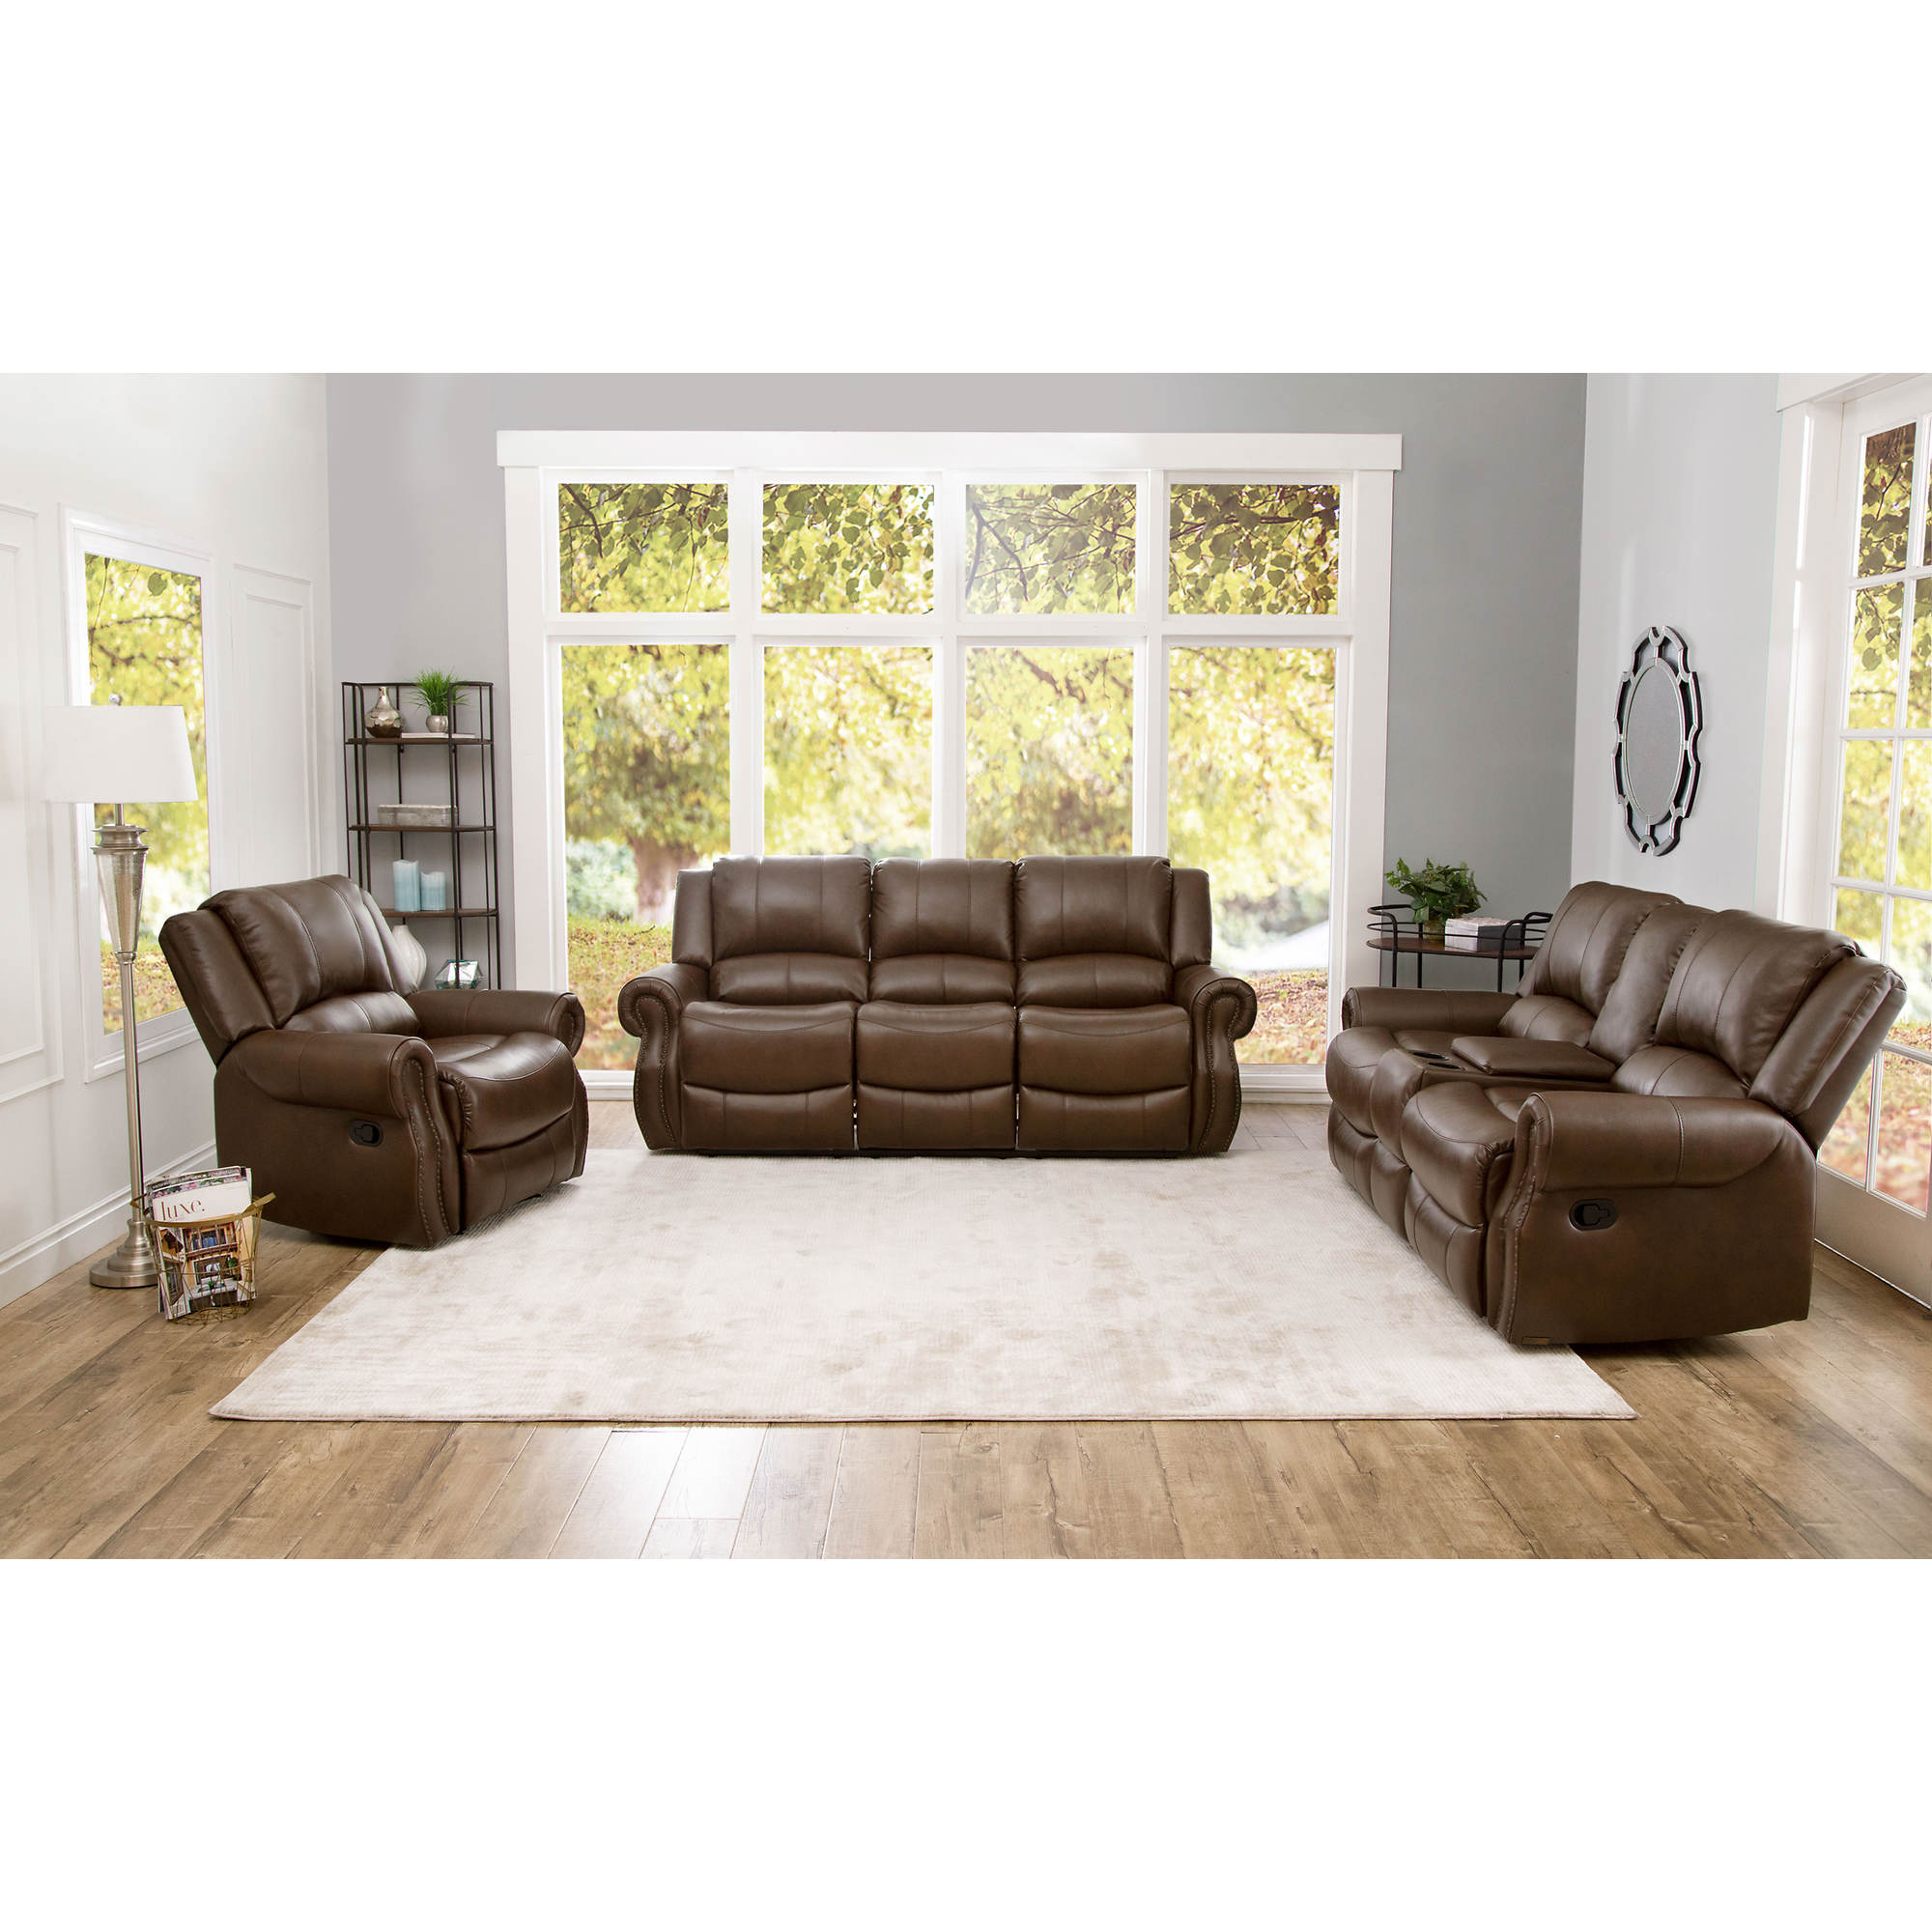 Rooms To Go Living Room Sets With Tv